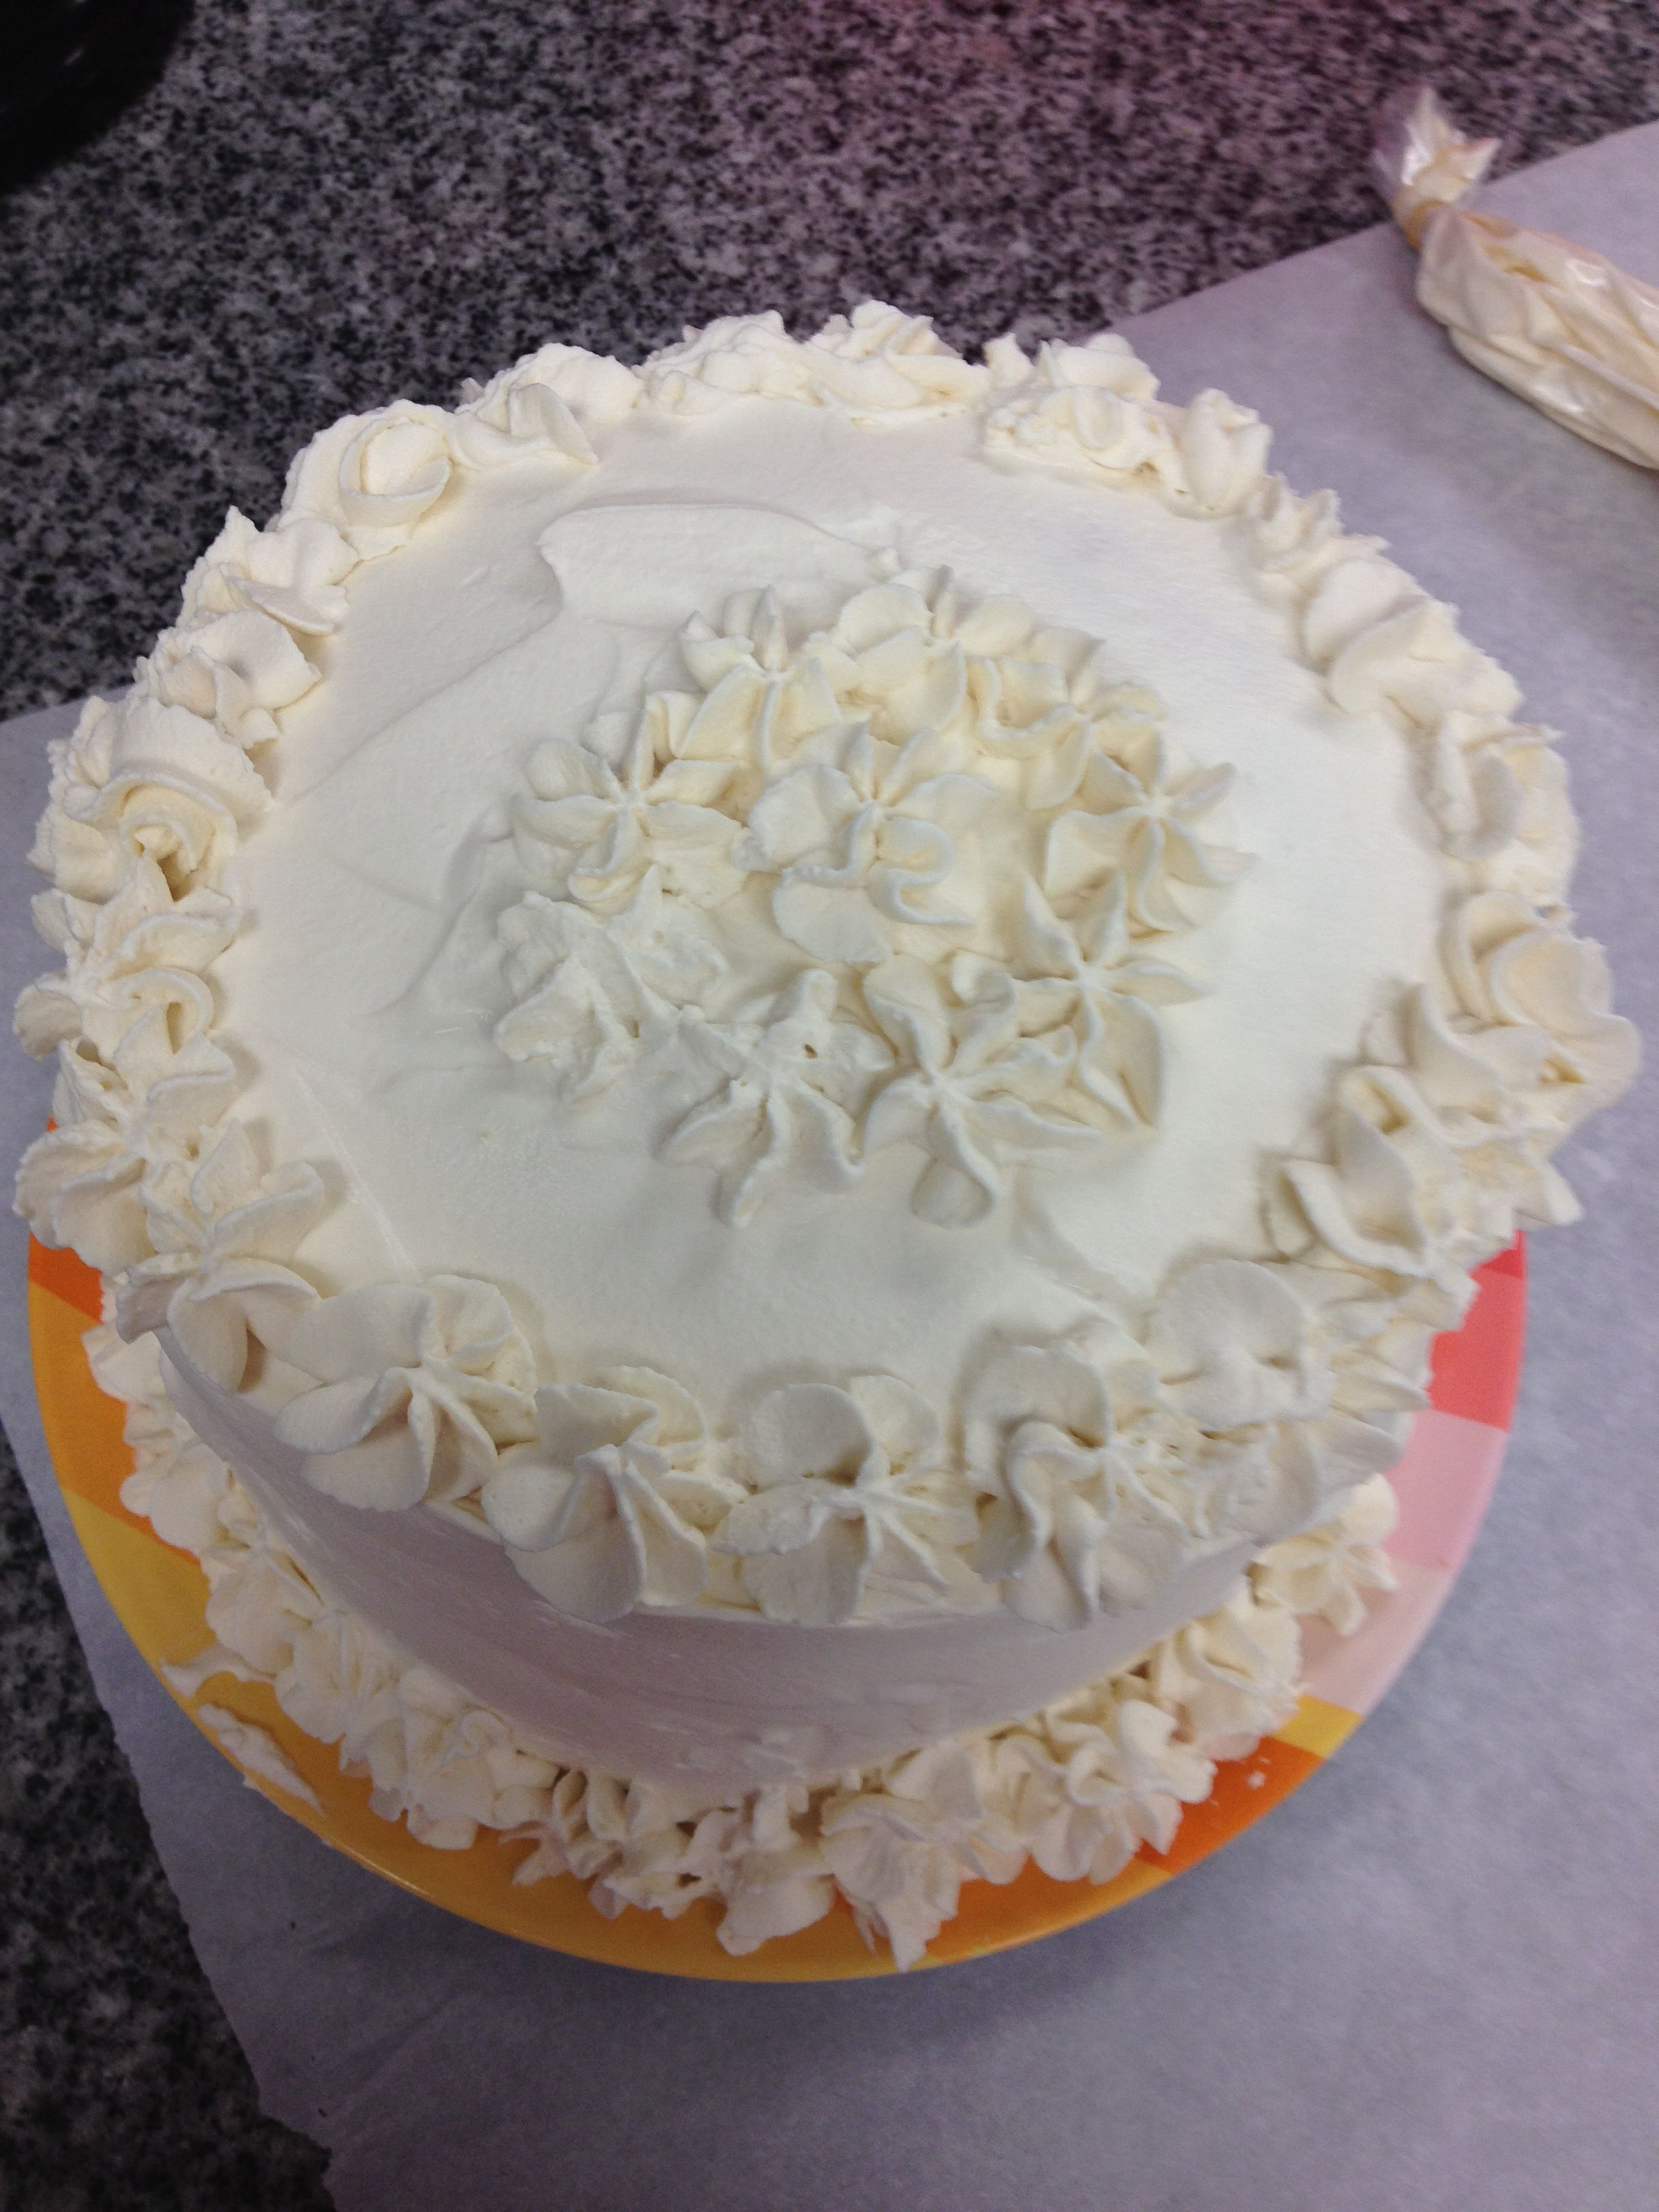 Pin by Bonnie Kulwin on Cake Decorating -Students | Pinterest